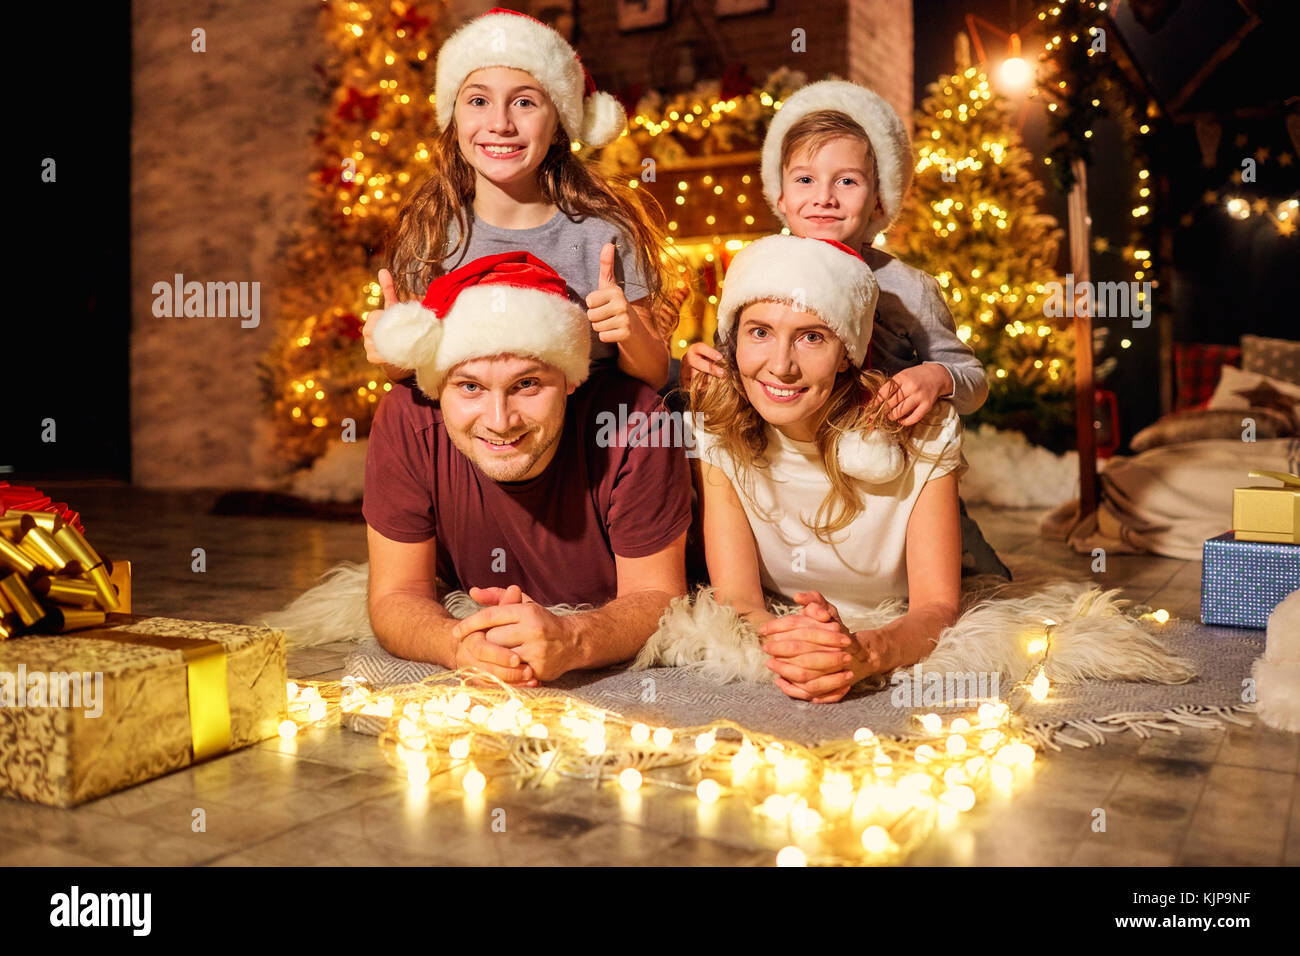 Family in a room with a Christmas tree on Christmas Day. - Stock Image